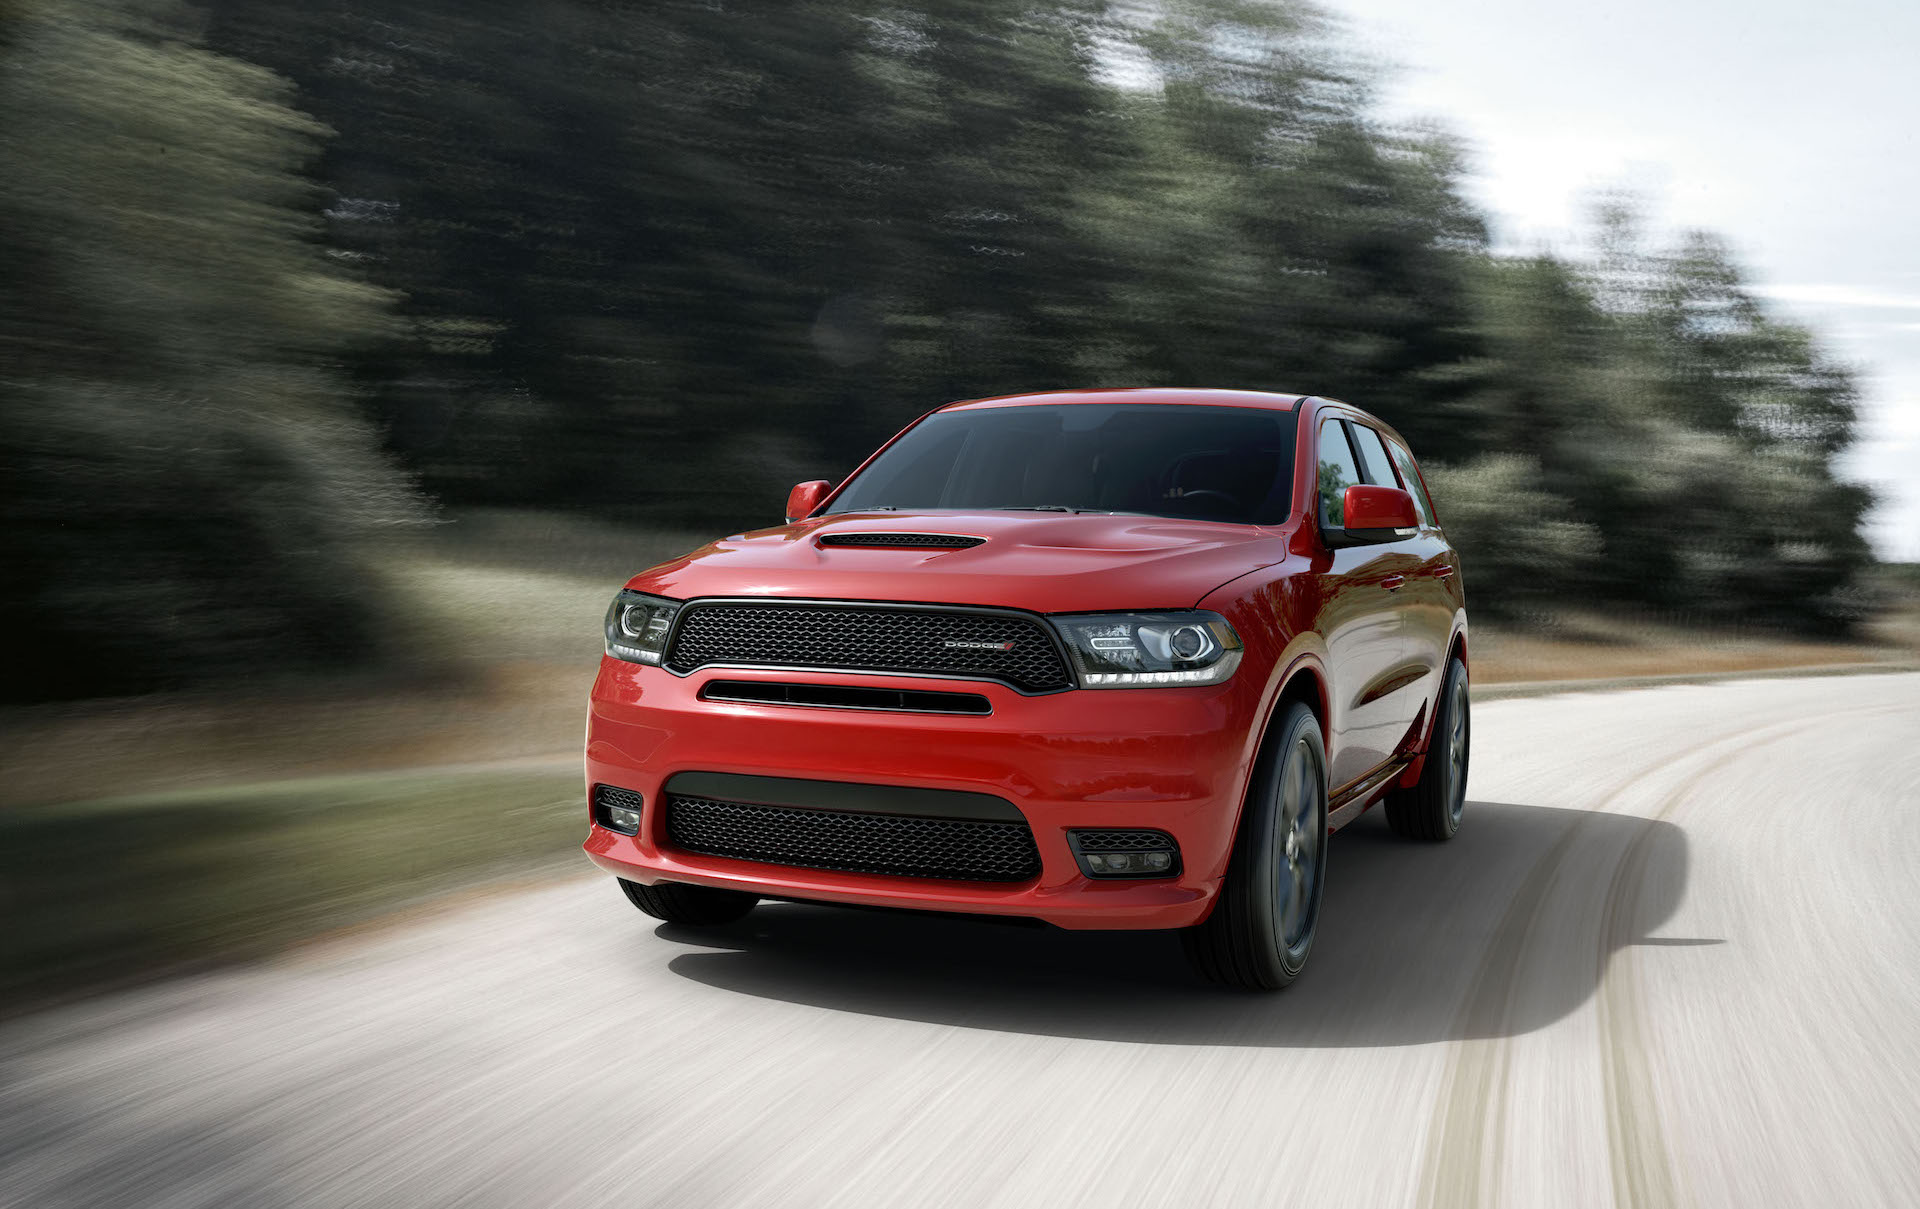 2018 Dodge Durango Full Review >> 2018 Dodge Durango Review Ratings Specs Prices And